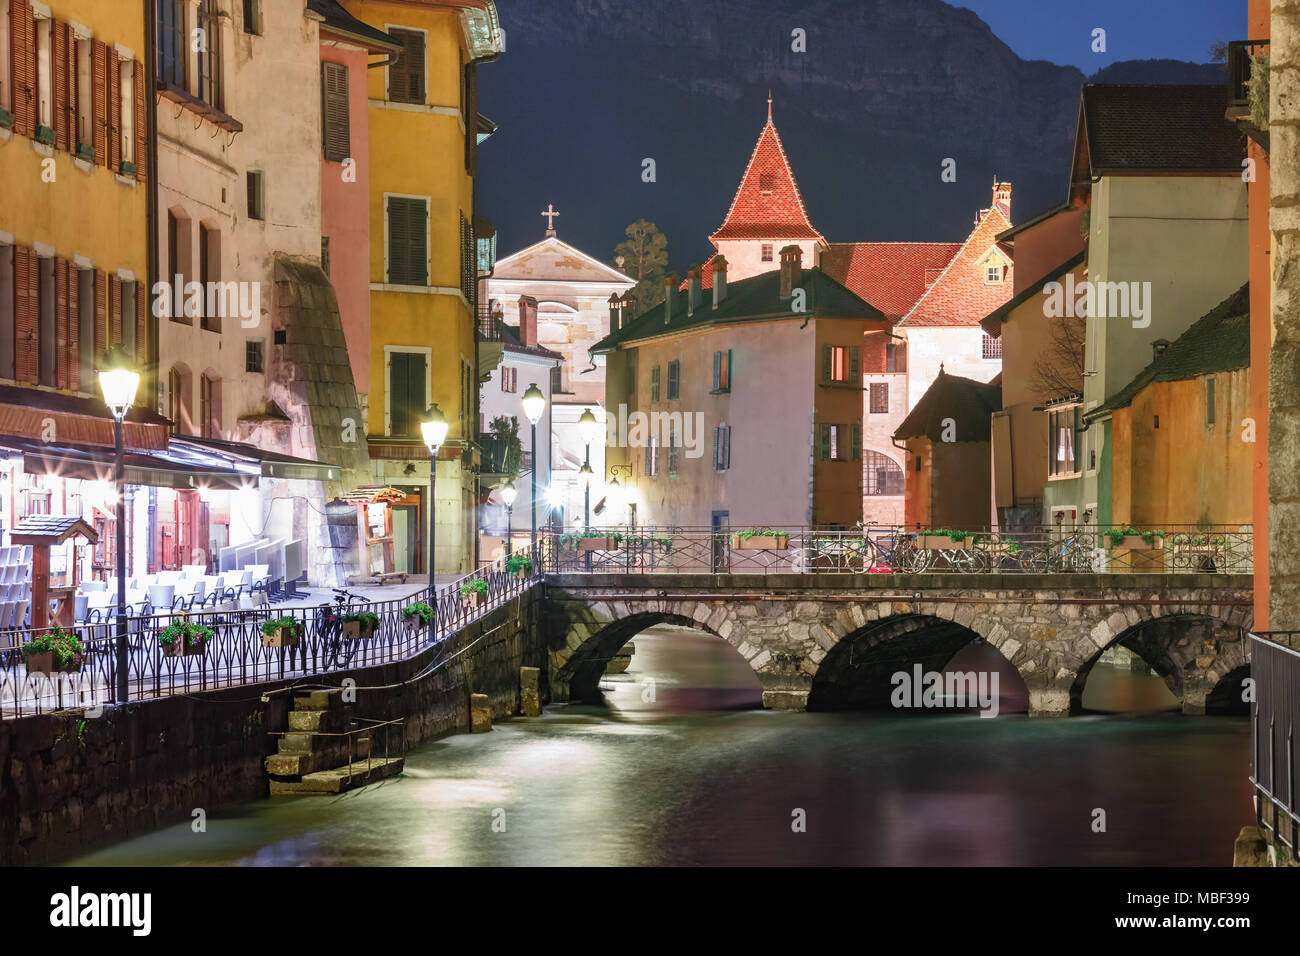 Annecy, called Venice of the Alps, France - Stock Image